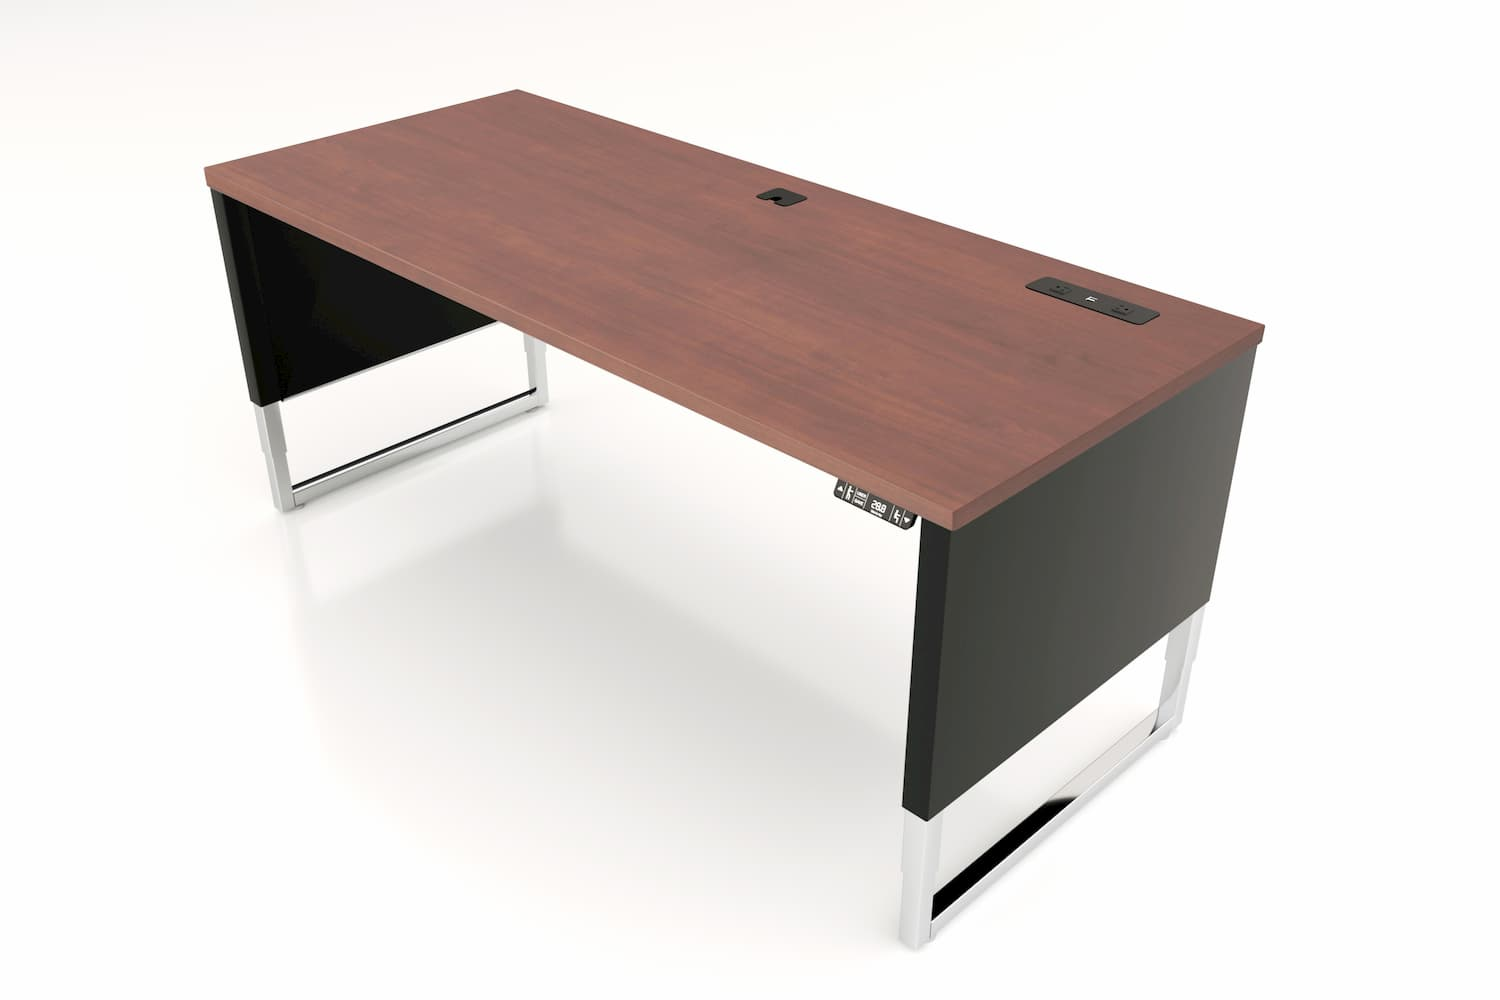 Advent-Desk-ADV-7230-BK-Custom-Top-10